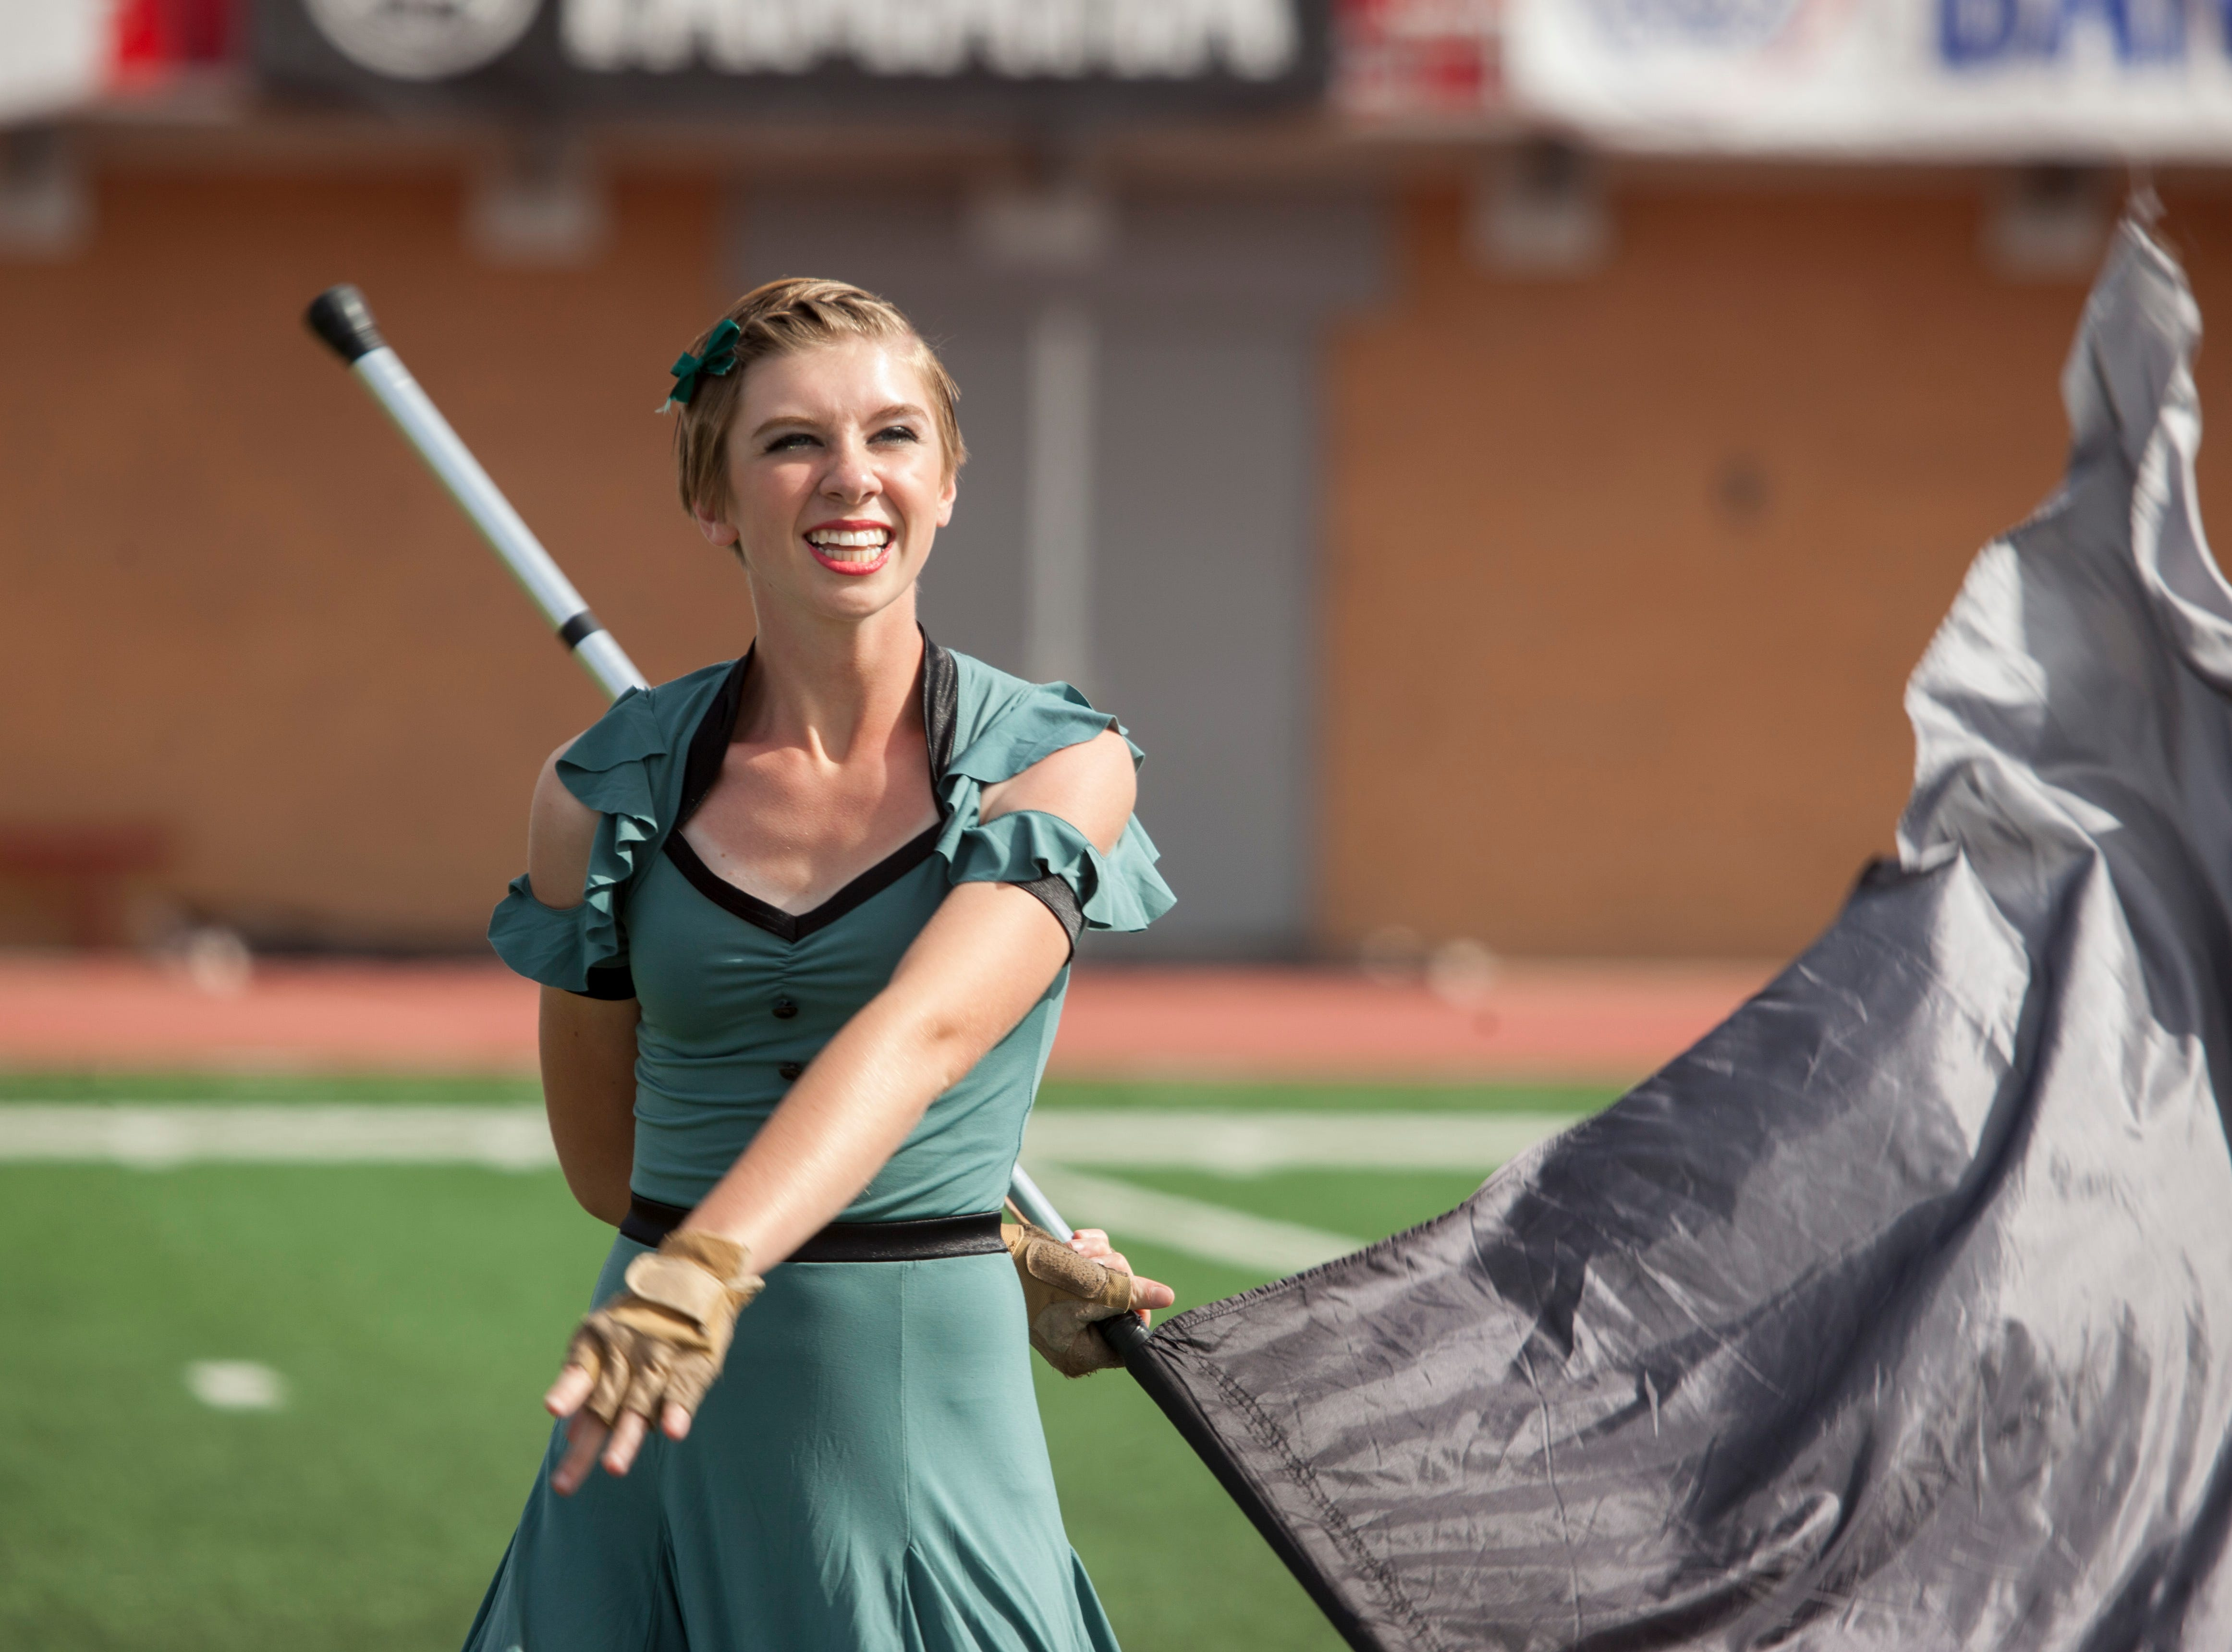 Bands compete at the Bands of America Championships at Trailblazer Stadium Saturday, Oct. 27, 2018.